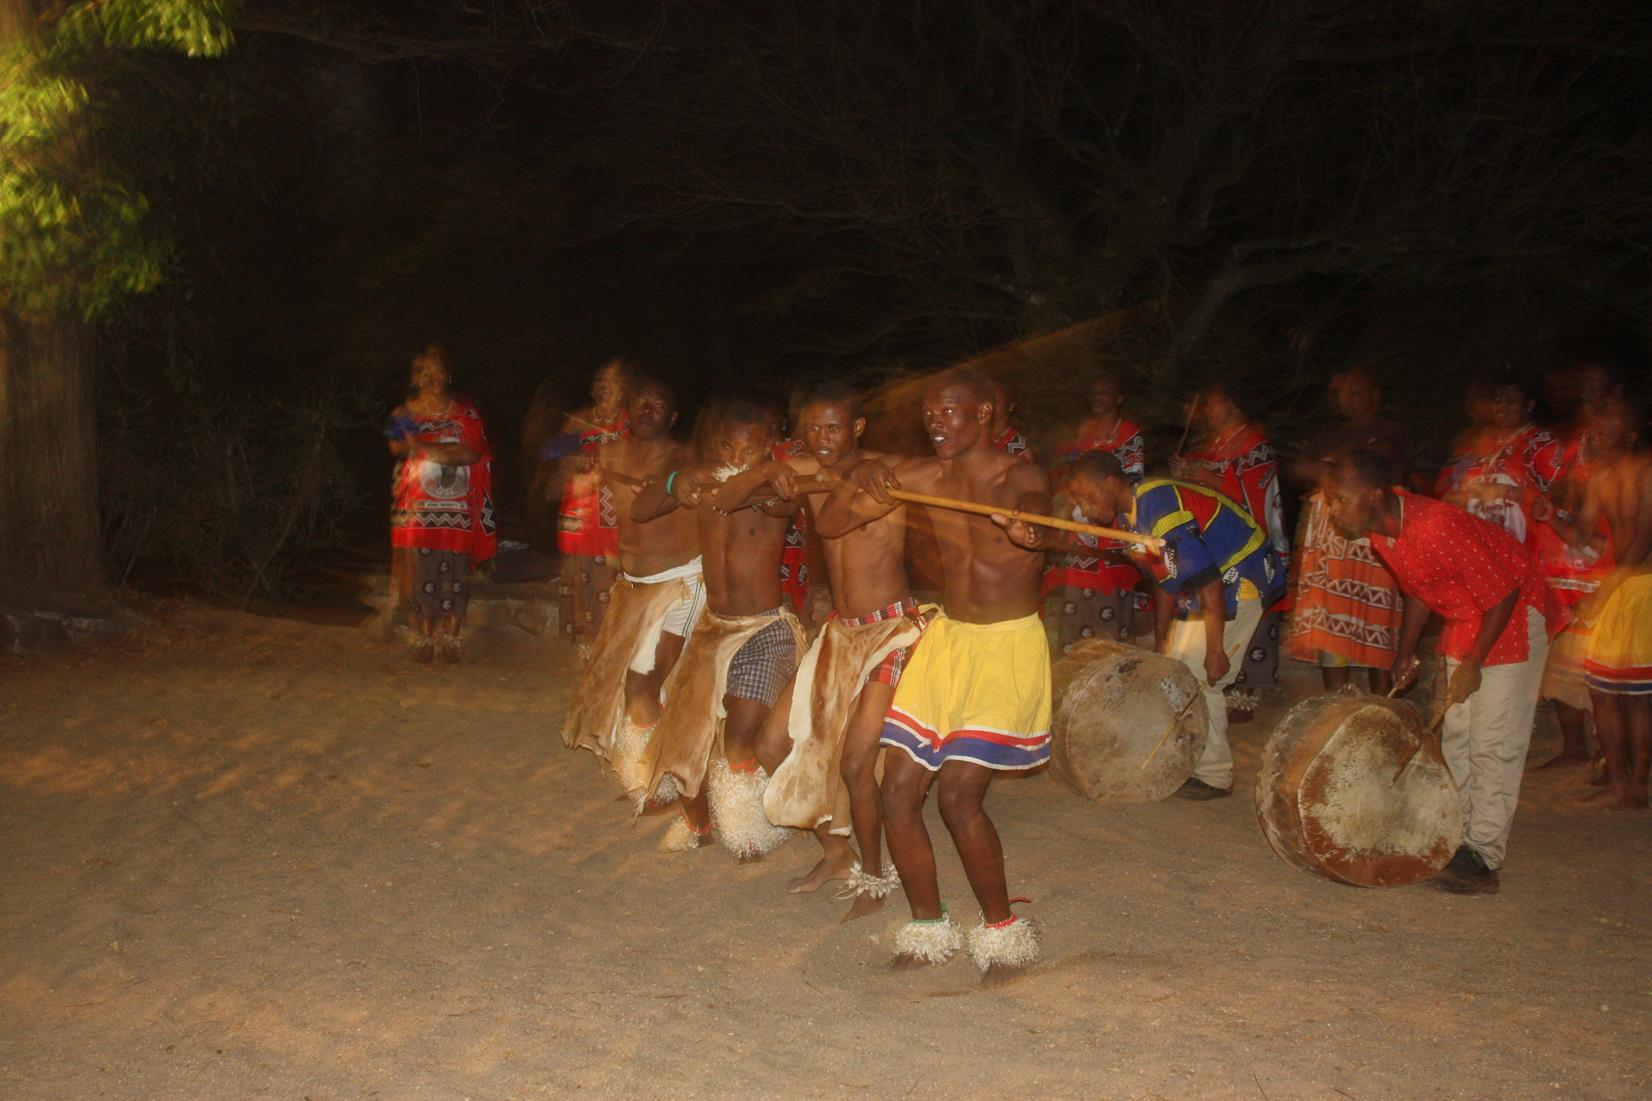 Swazi dancing at Mlilwane.